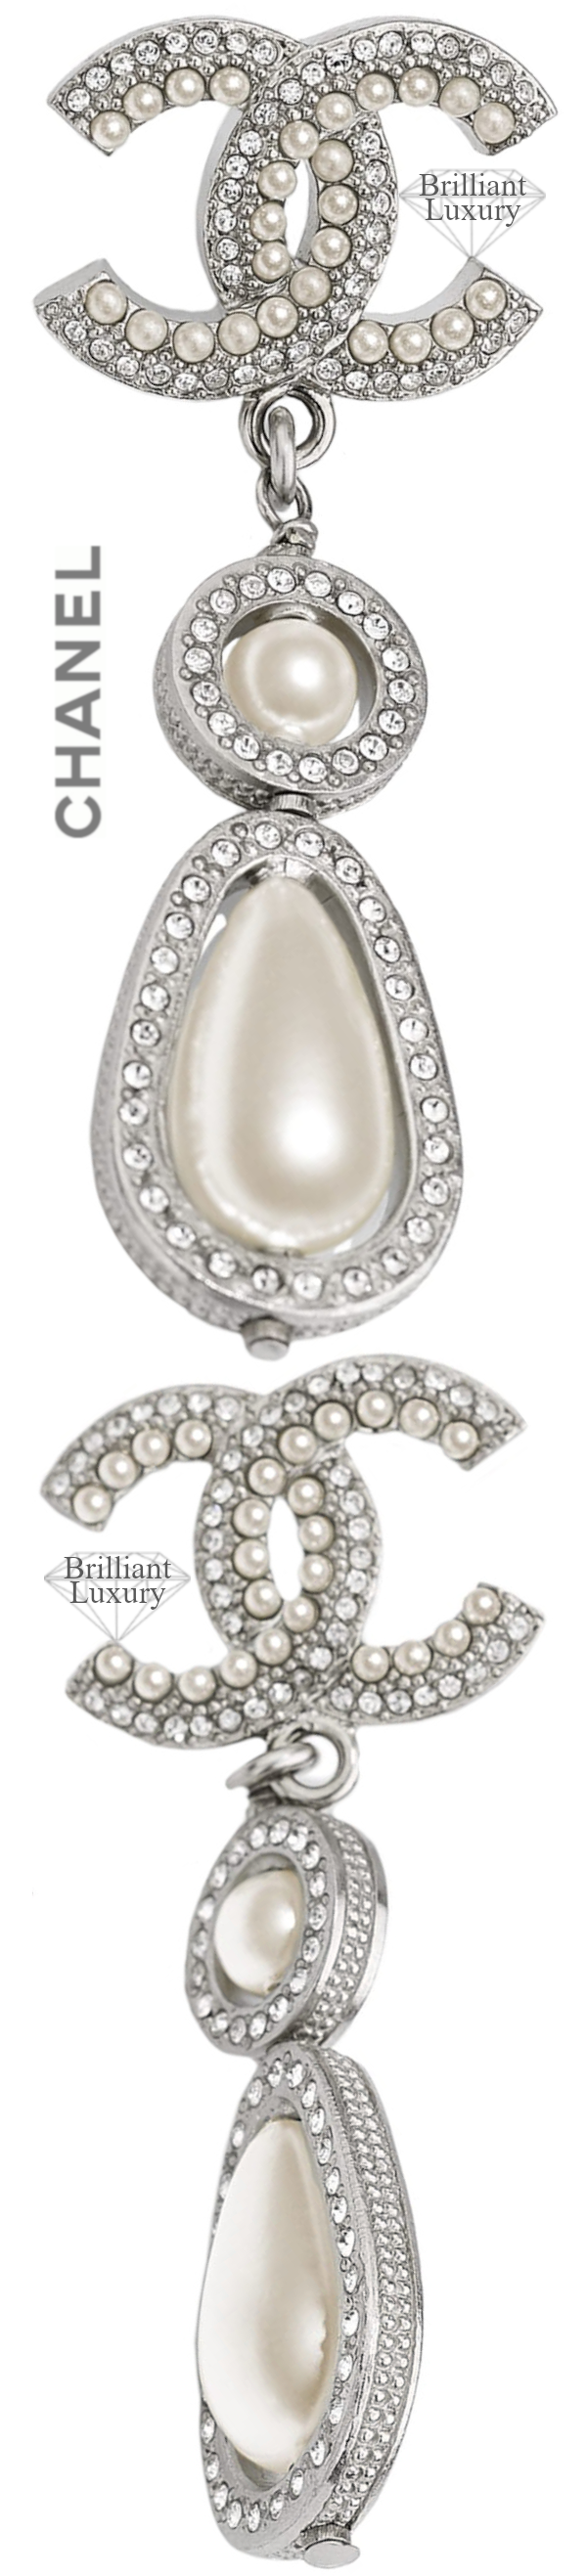 CHANEL Costume Jewelry II Silver Pearl Drop Earrings #jewelry